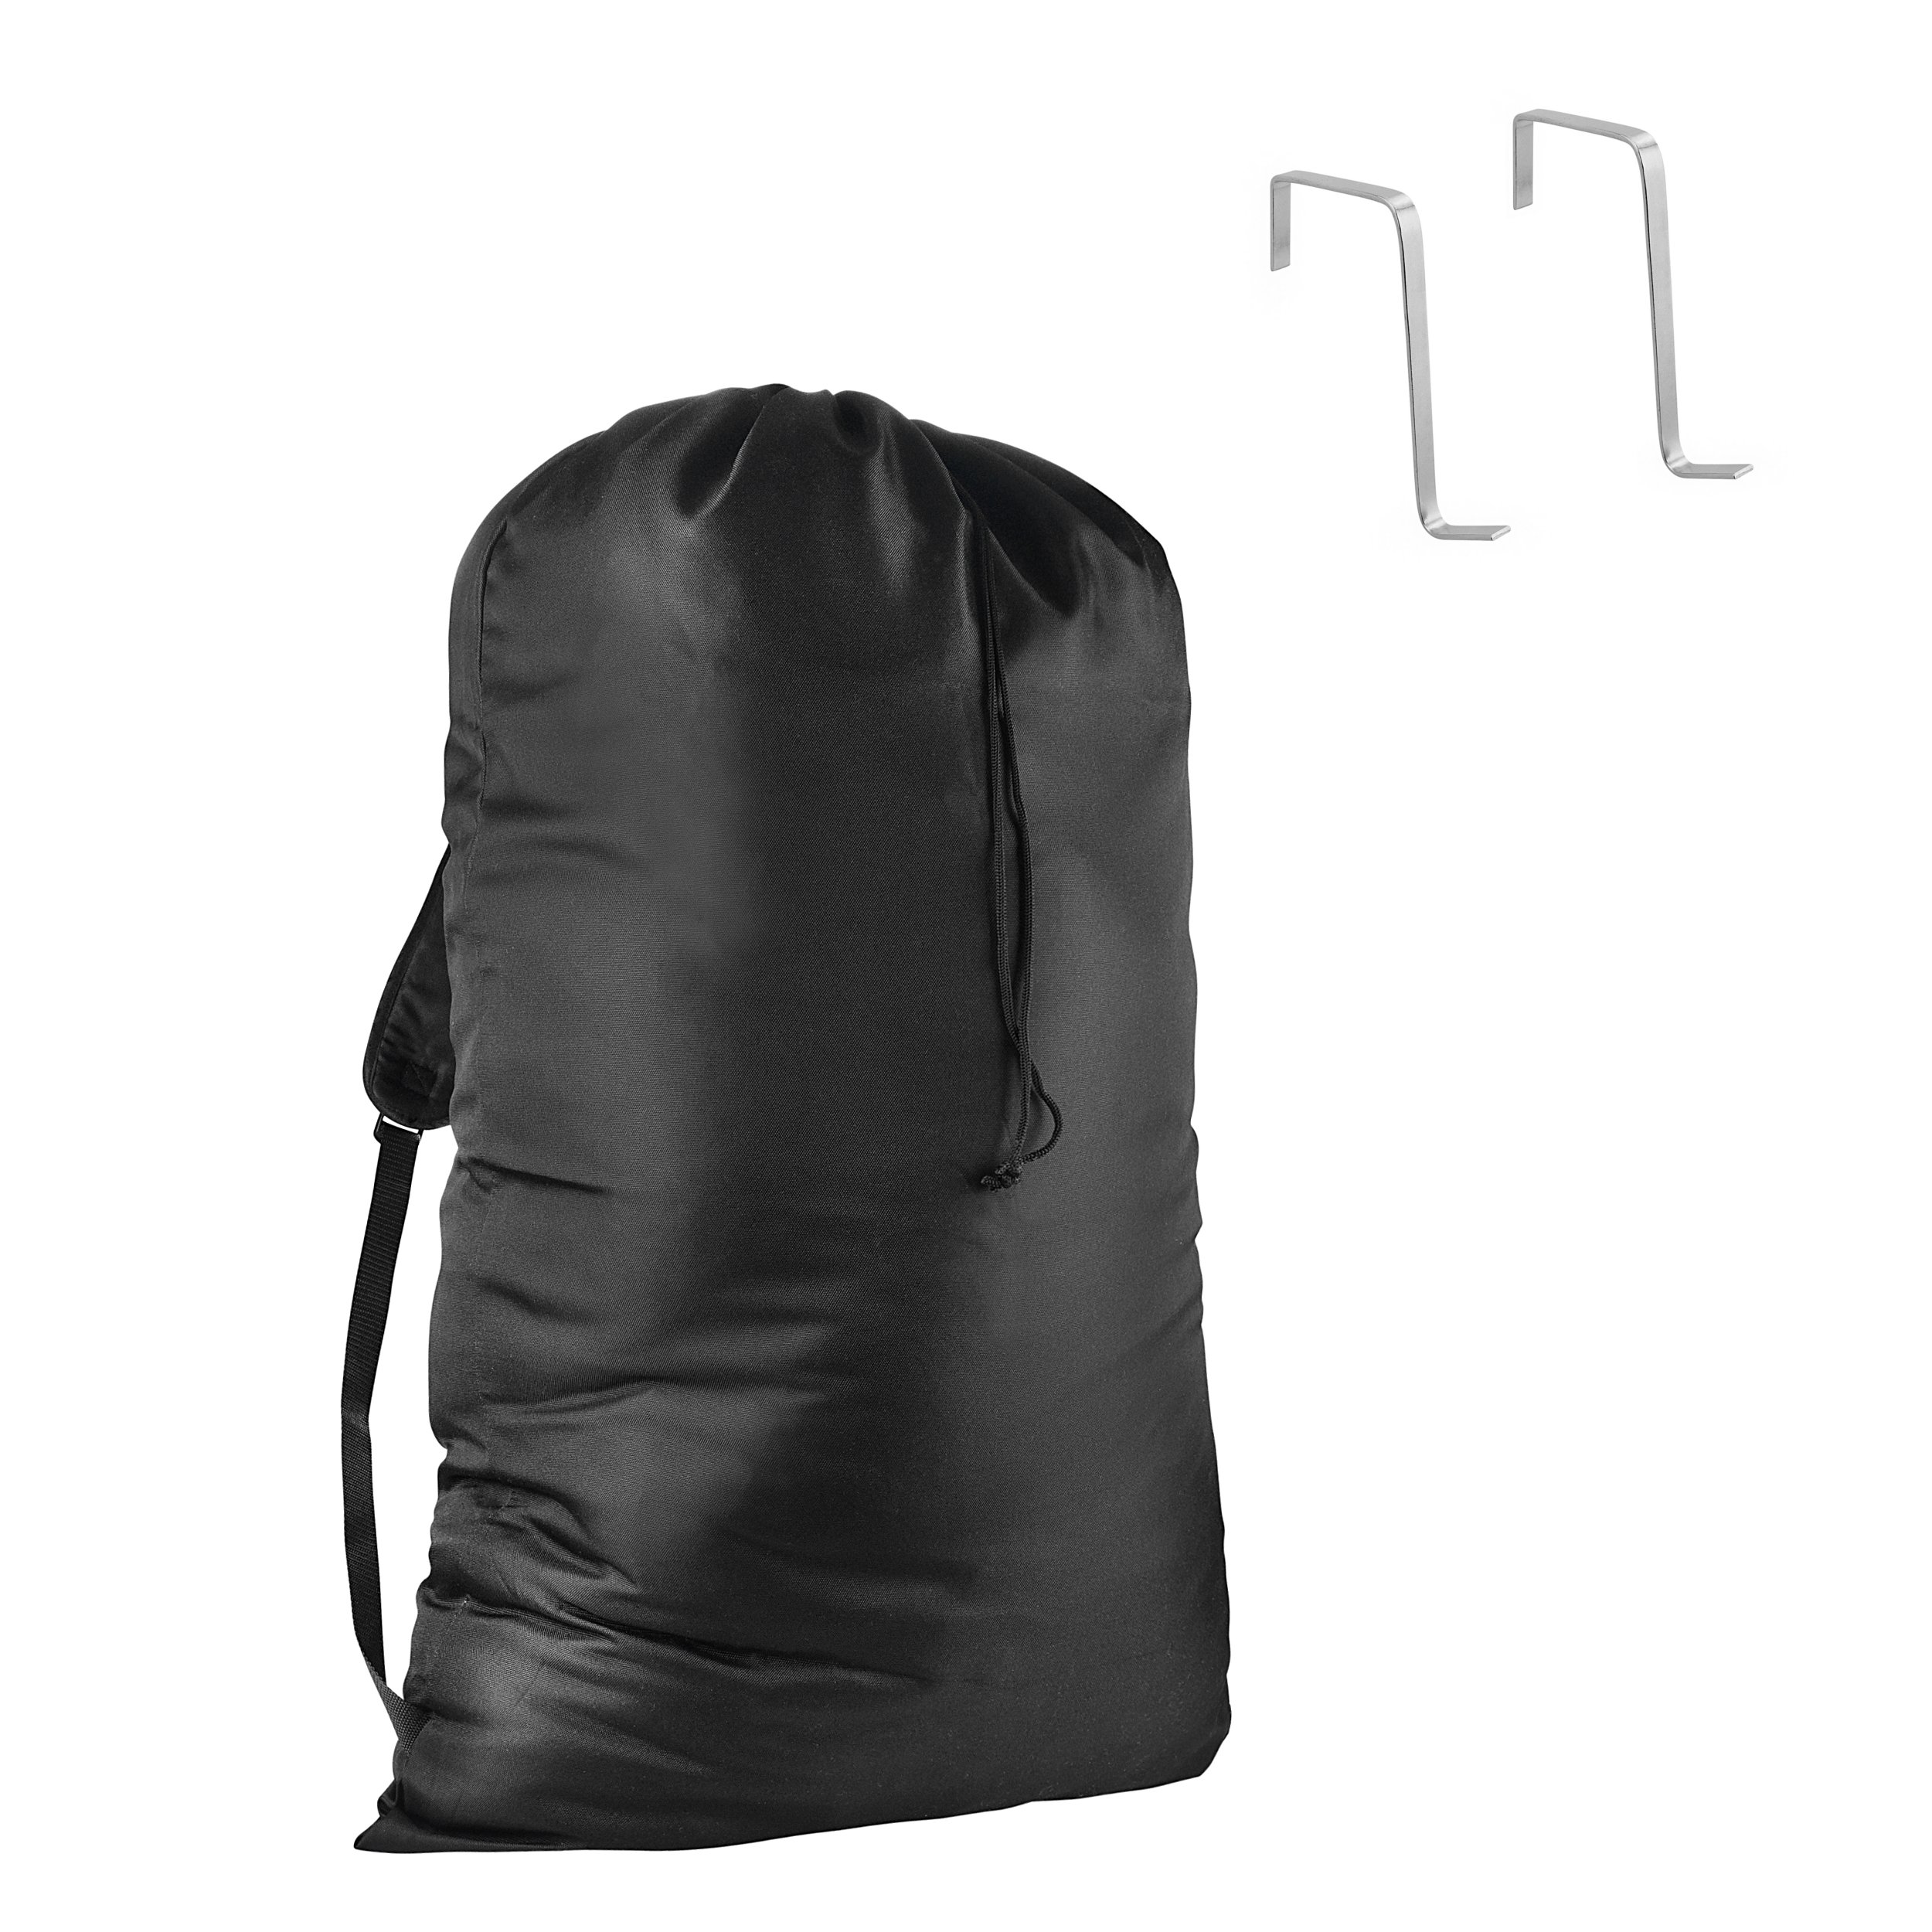 Hanging Laundry Bag with Bookbag Shoulder Straps   40 in tall x 28 in wide   For College Dorm Students   Reinforced Stitching Prevents Ripping   Behind The Door Storage with Door Hooks